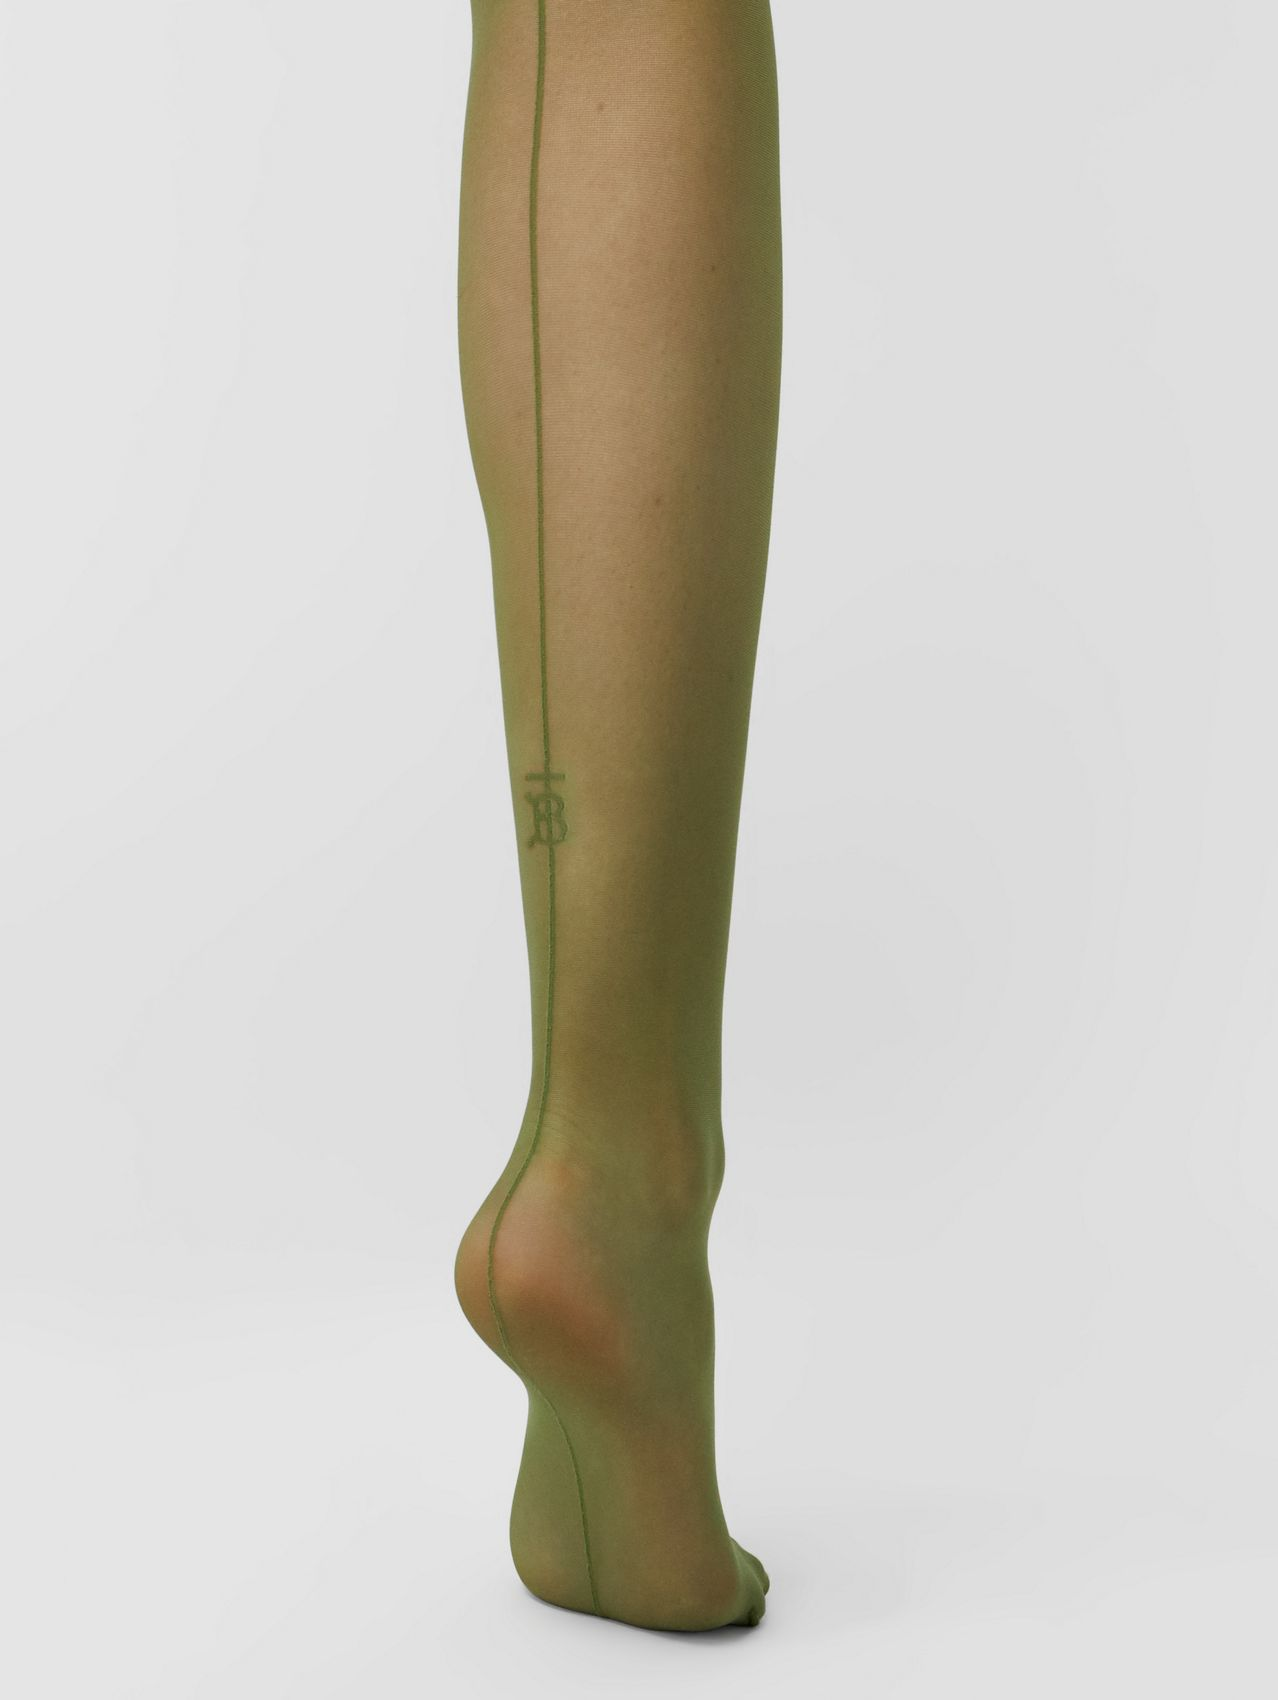 Monogram Motif Seamed Tights (Cedar Green)